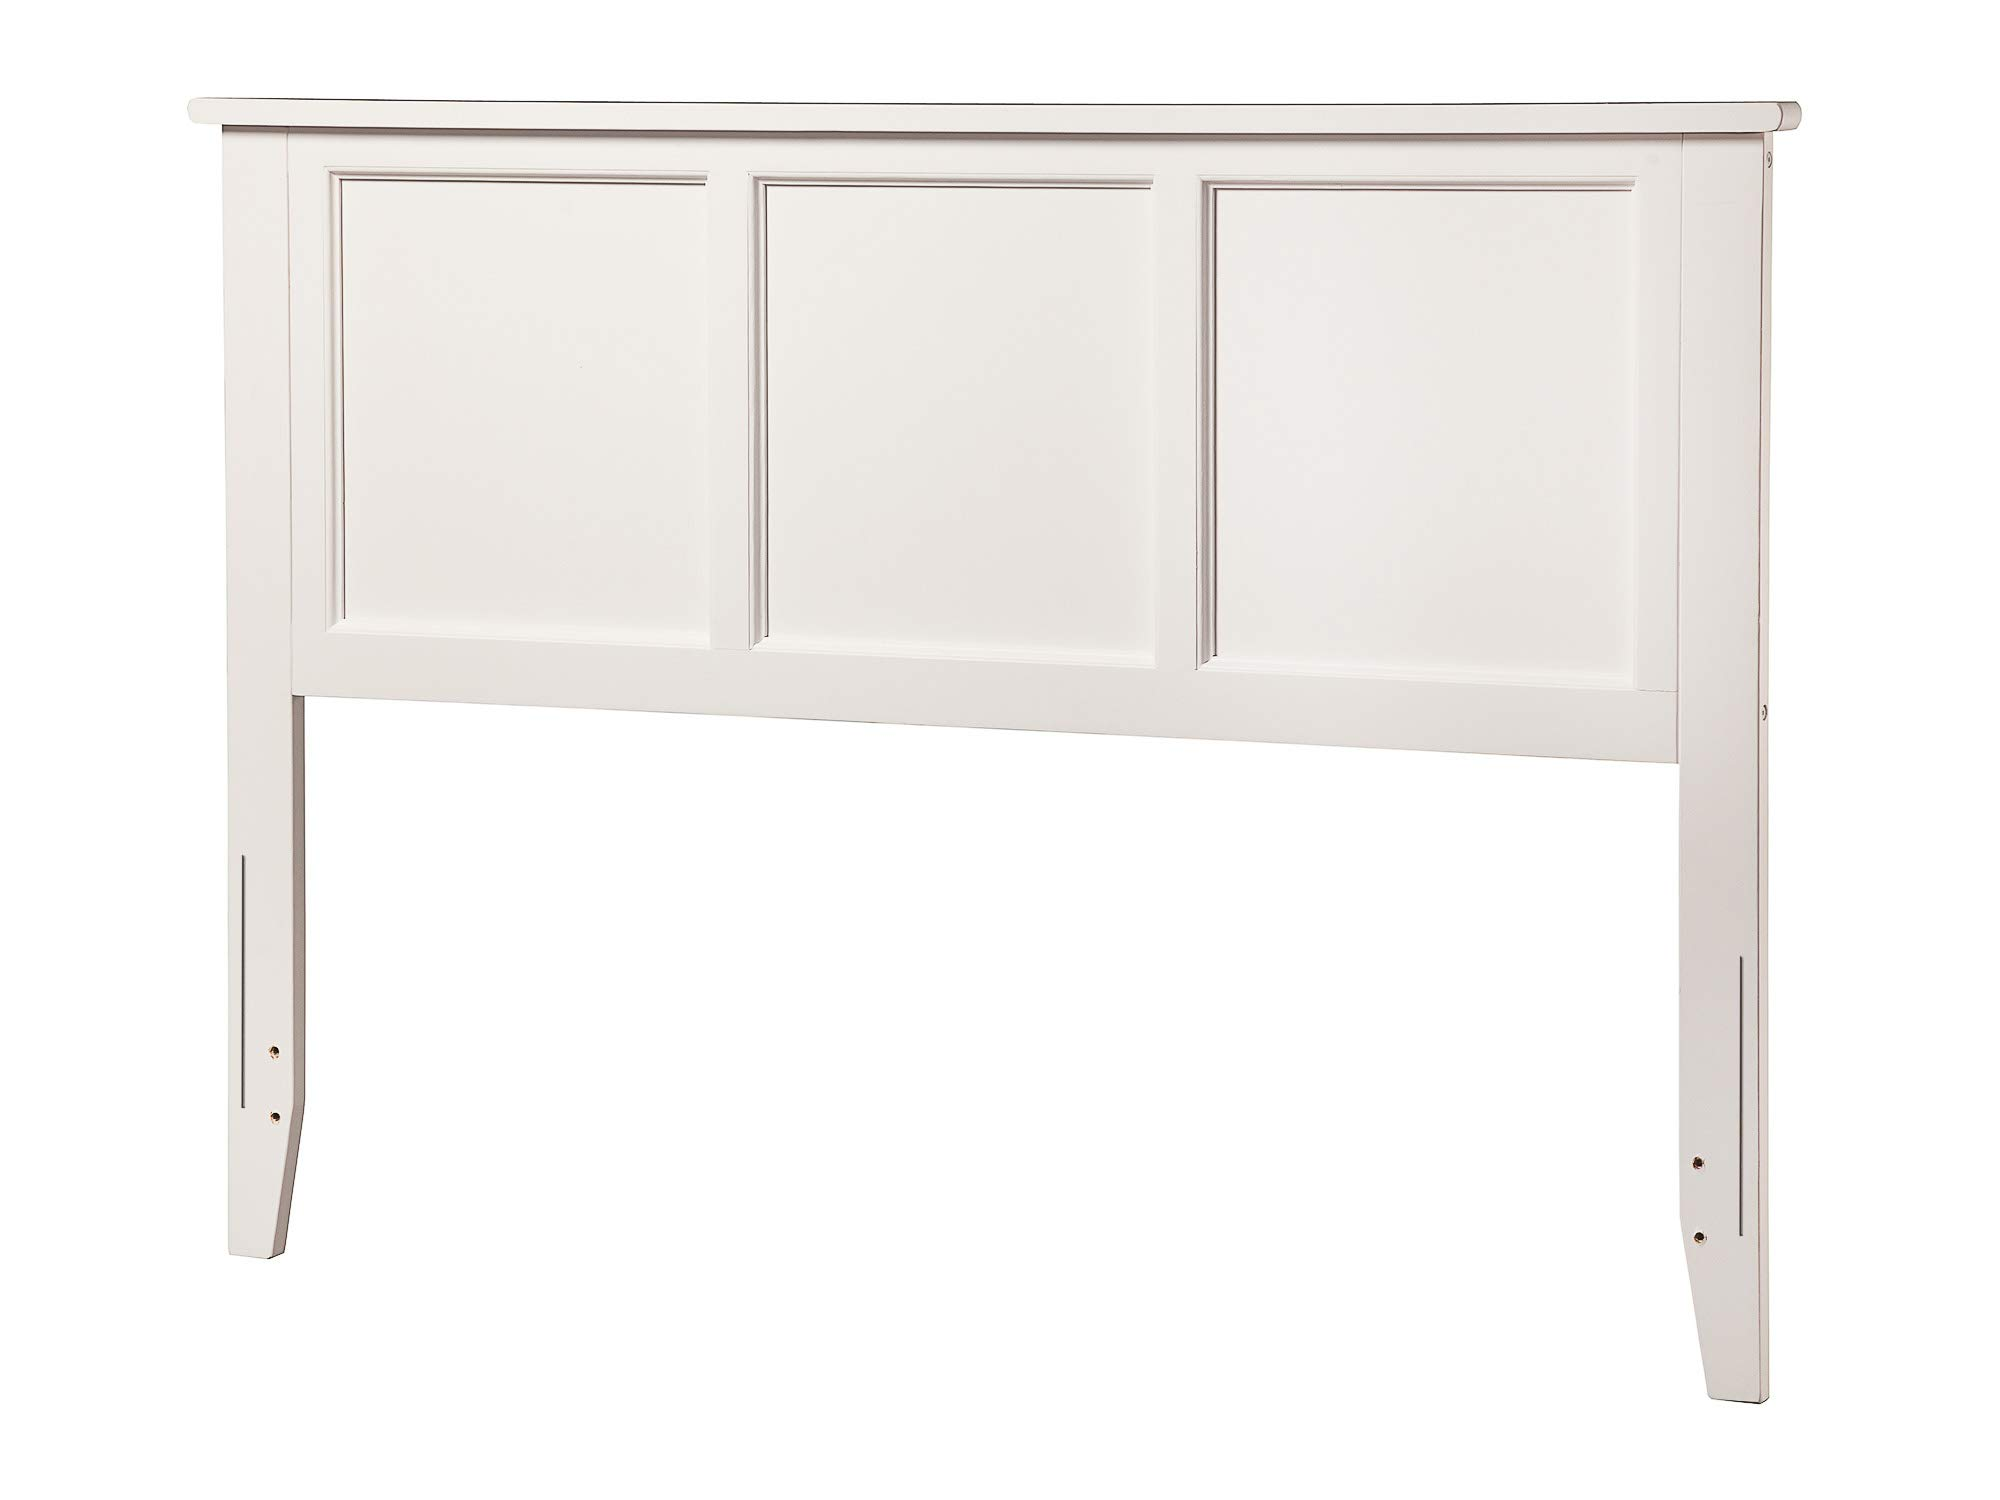 Atlantic Furniture Madison Headboard, Full, White by Atlantic Furniture